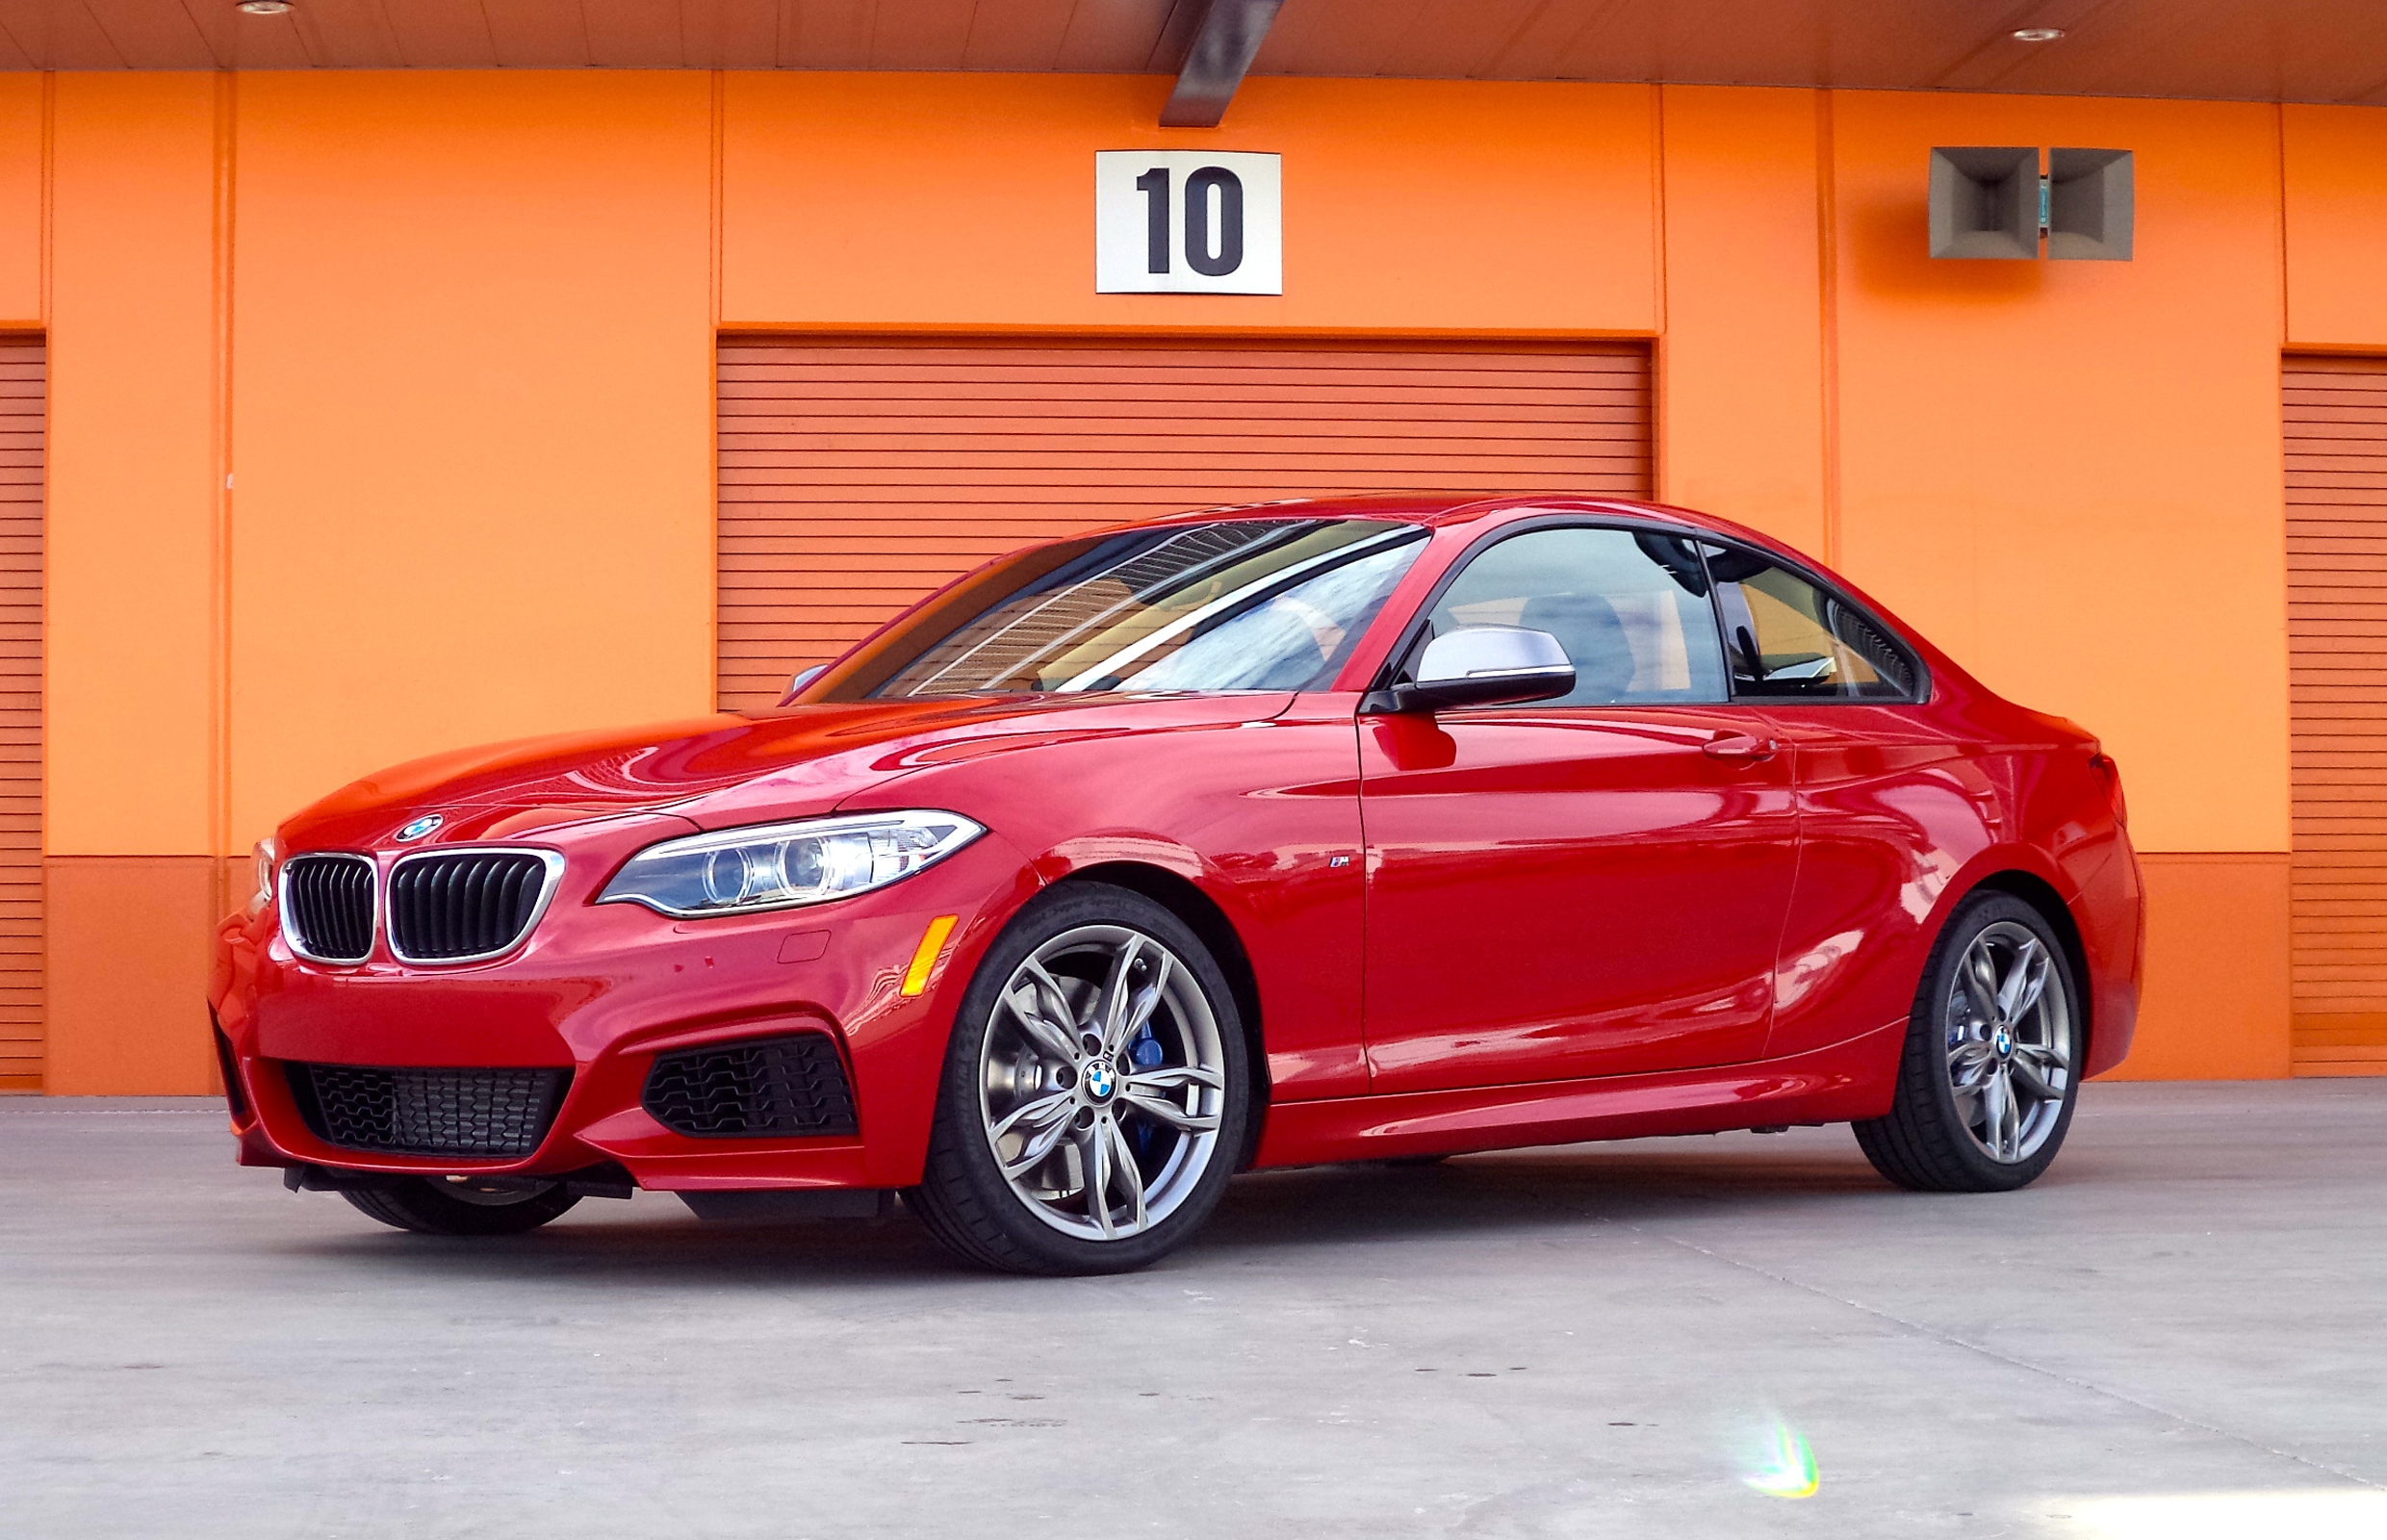 2014 Bmw M235i Exterior Profile (Photo 3 of 8)